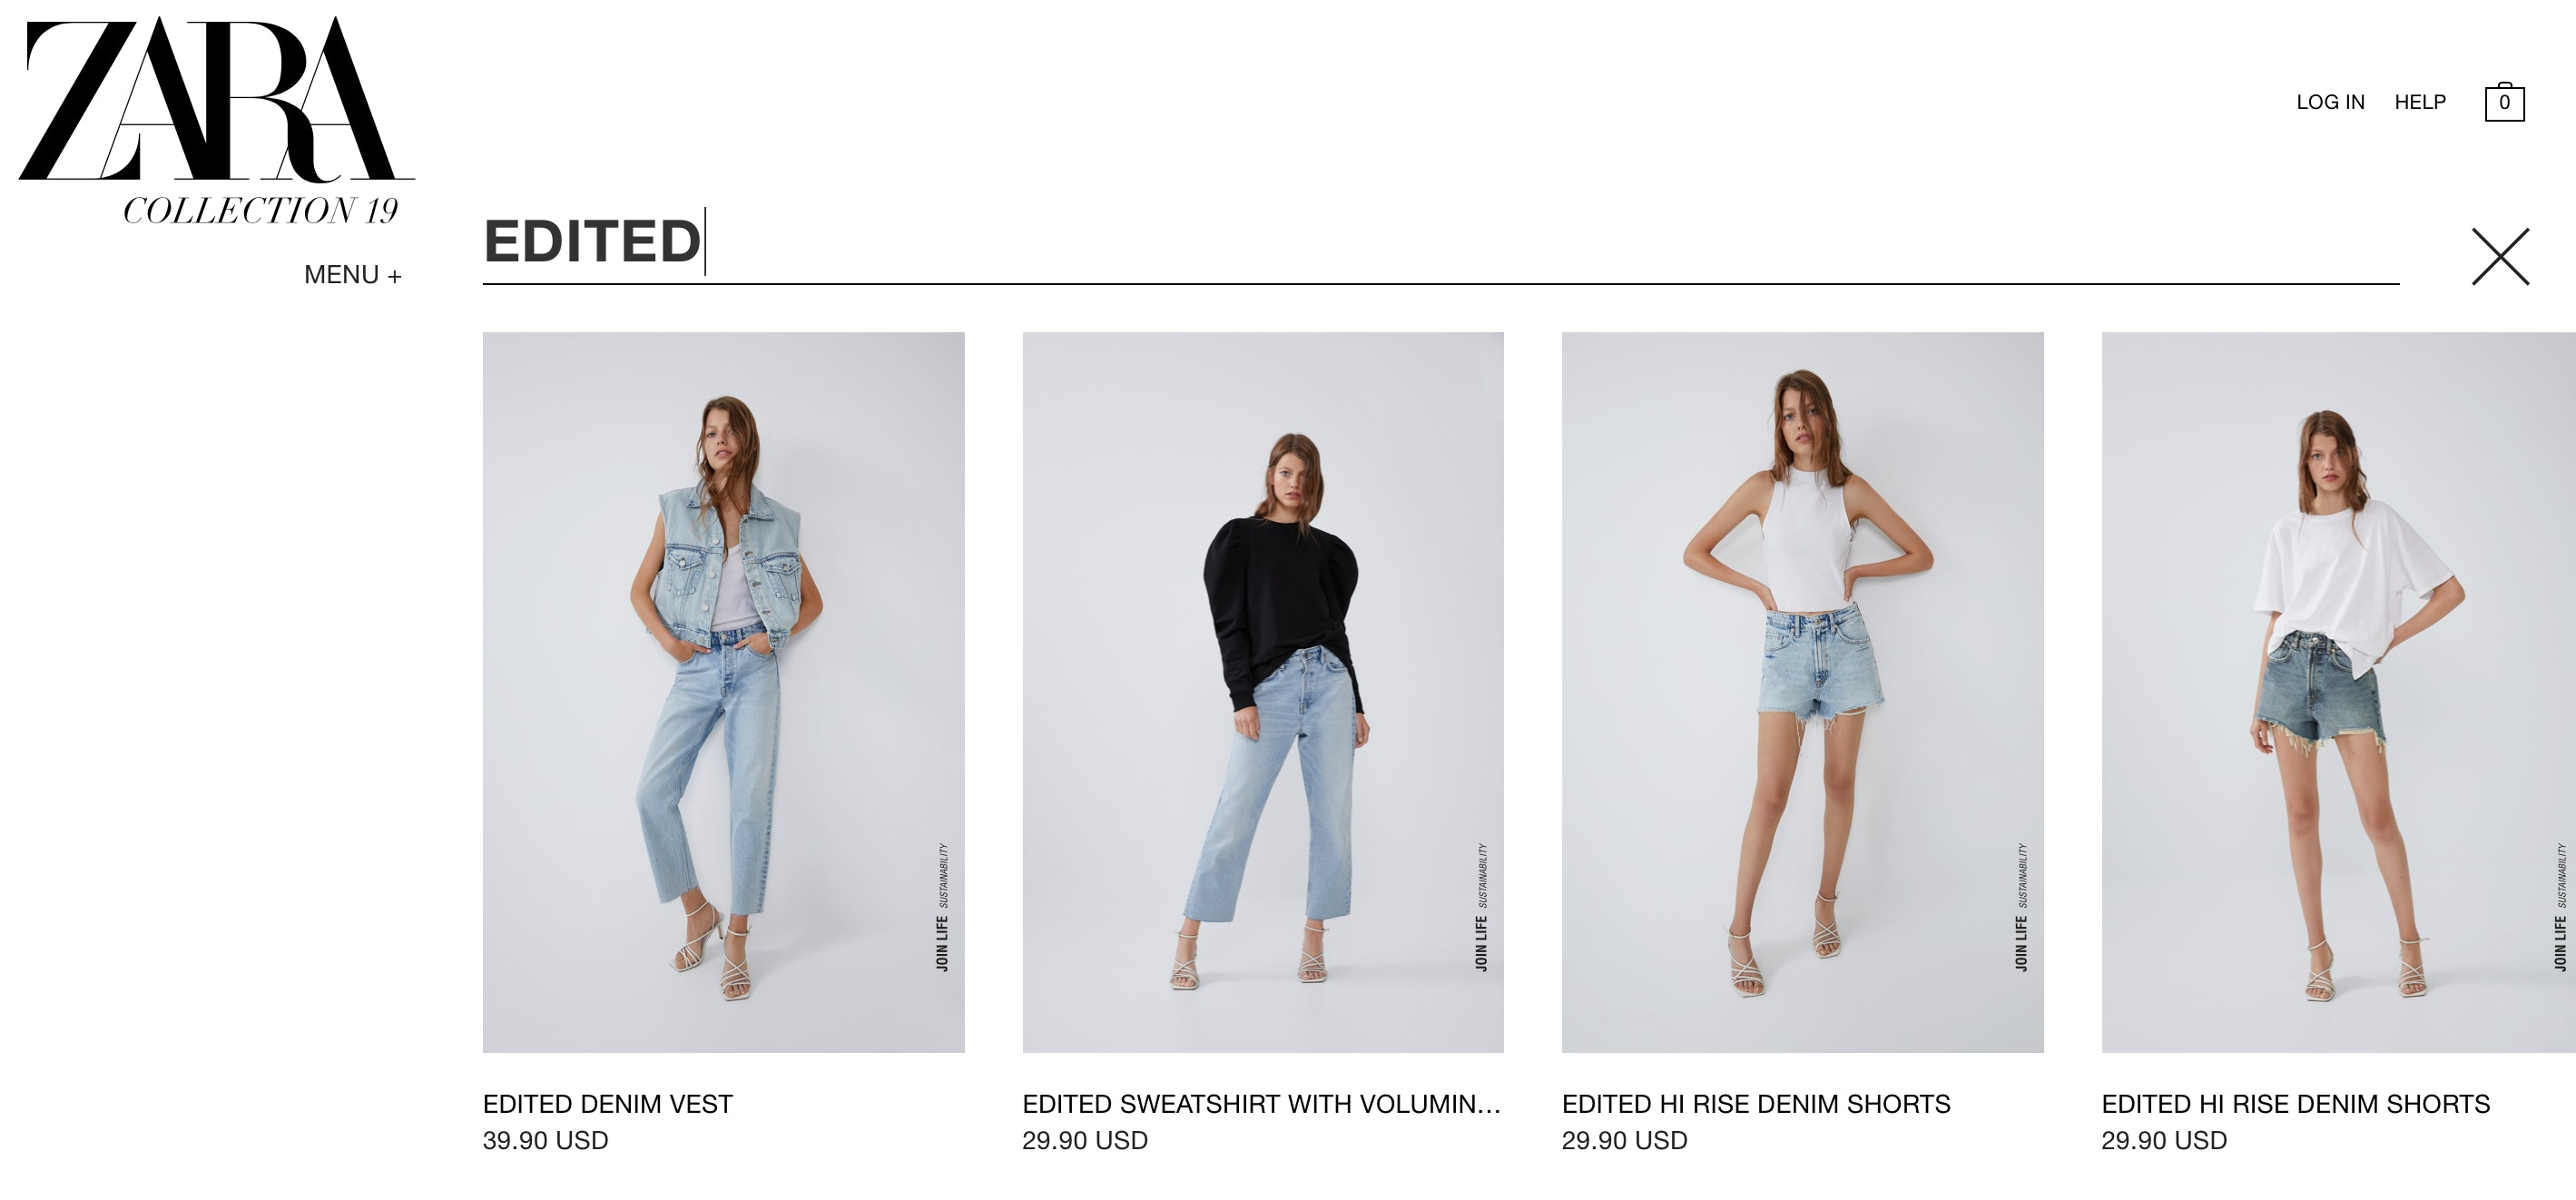 525ce6f5 Zara's Edited Collection Allows You To Customize Your Denim At No ...